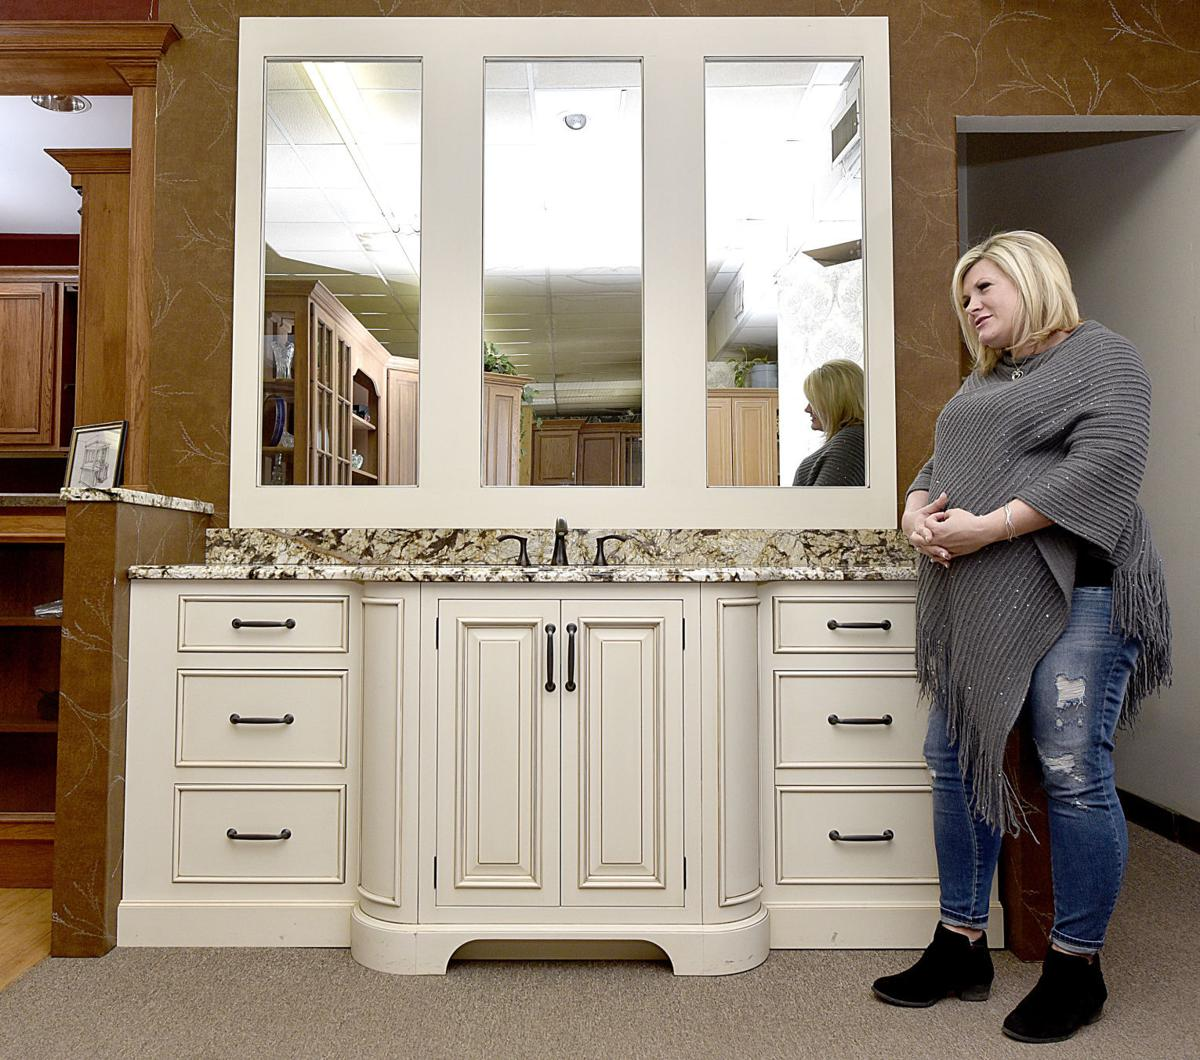 Kitchen Designs Become More Functional And Family Friendly Siouxland Life